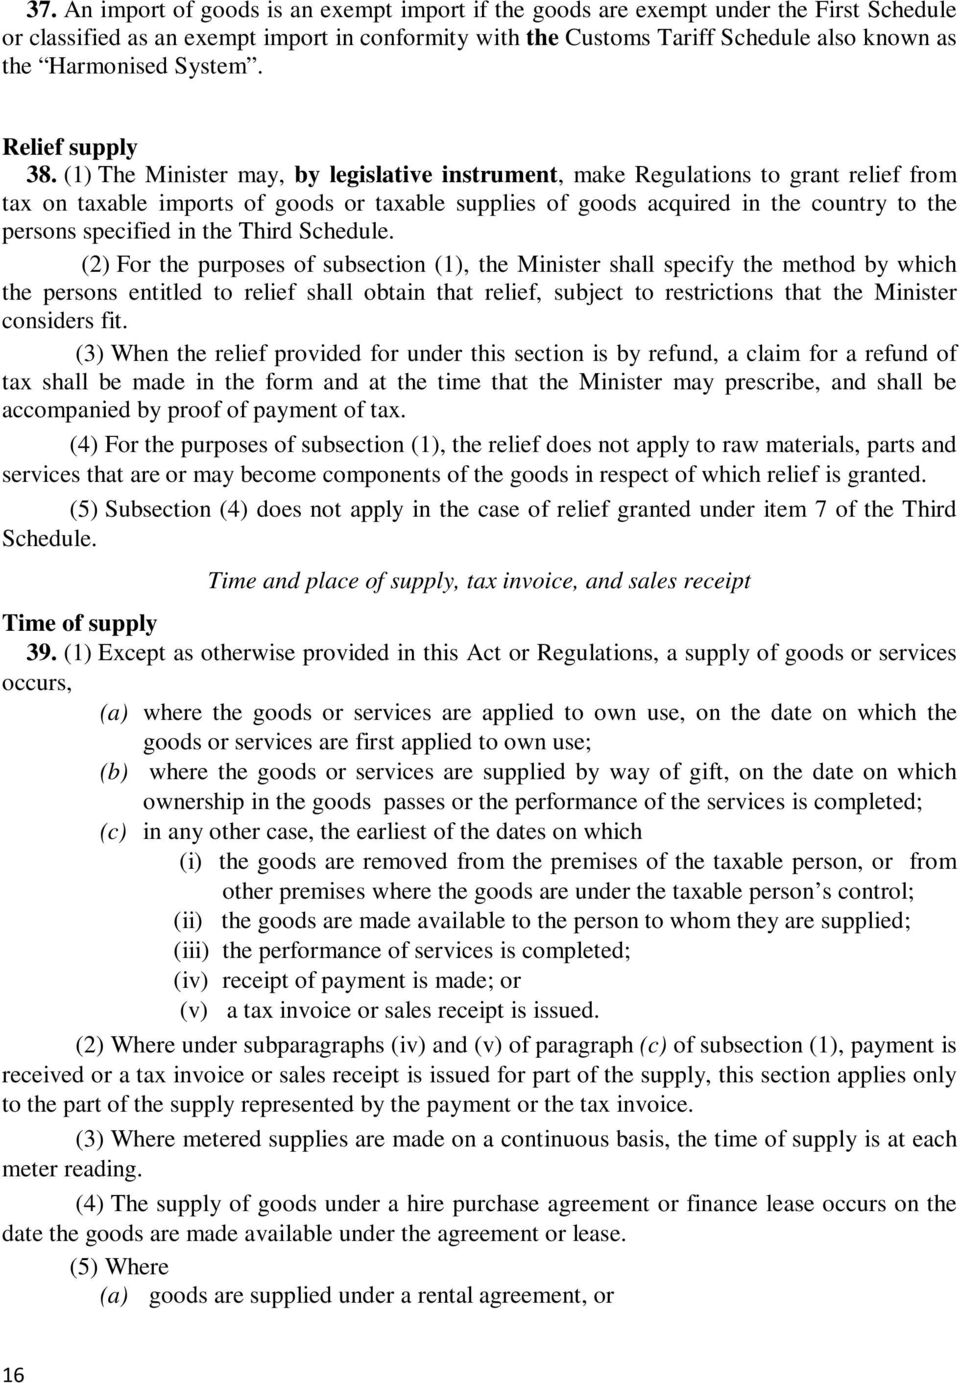 (1) The Minister may, by legislative instrument, make Regulations to grant relief from tax on taxable imports of goods or taxable supplies of goods acquired in the country to the persons specified in